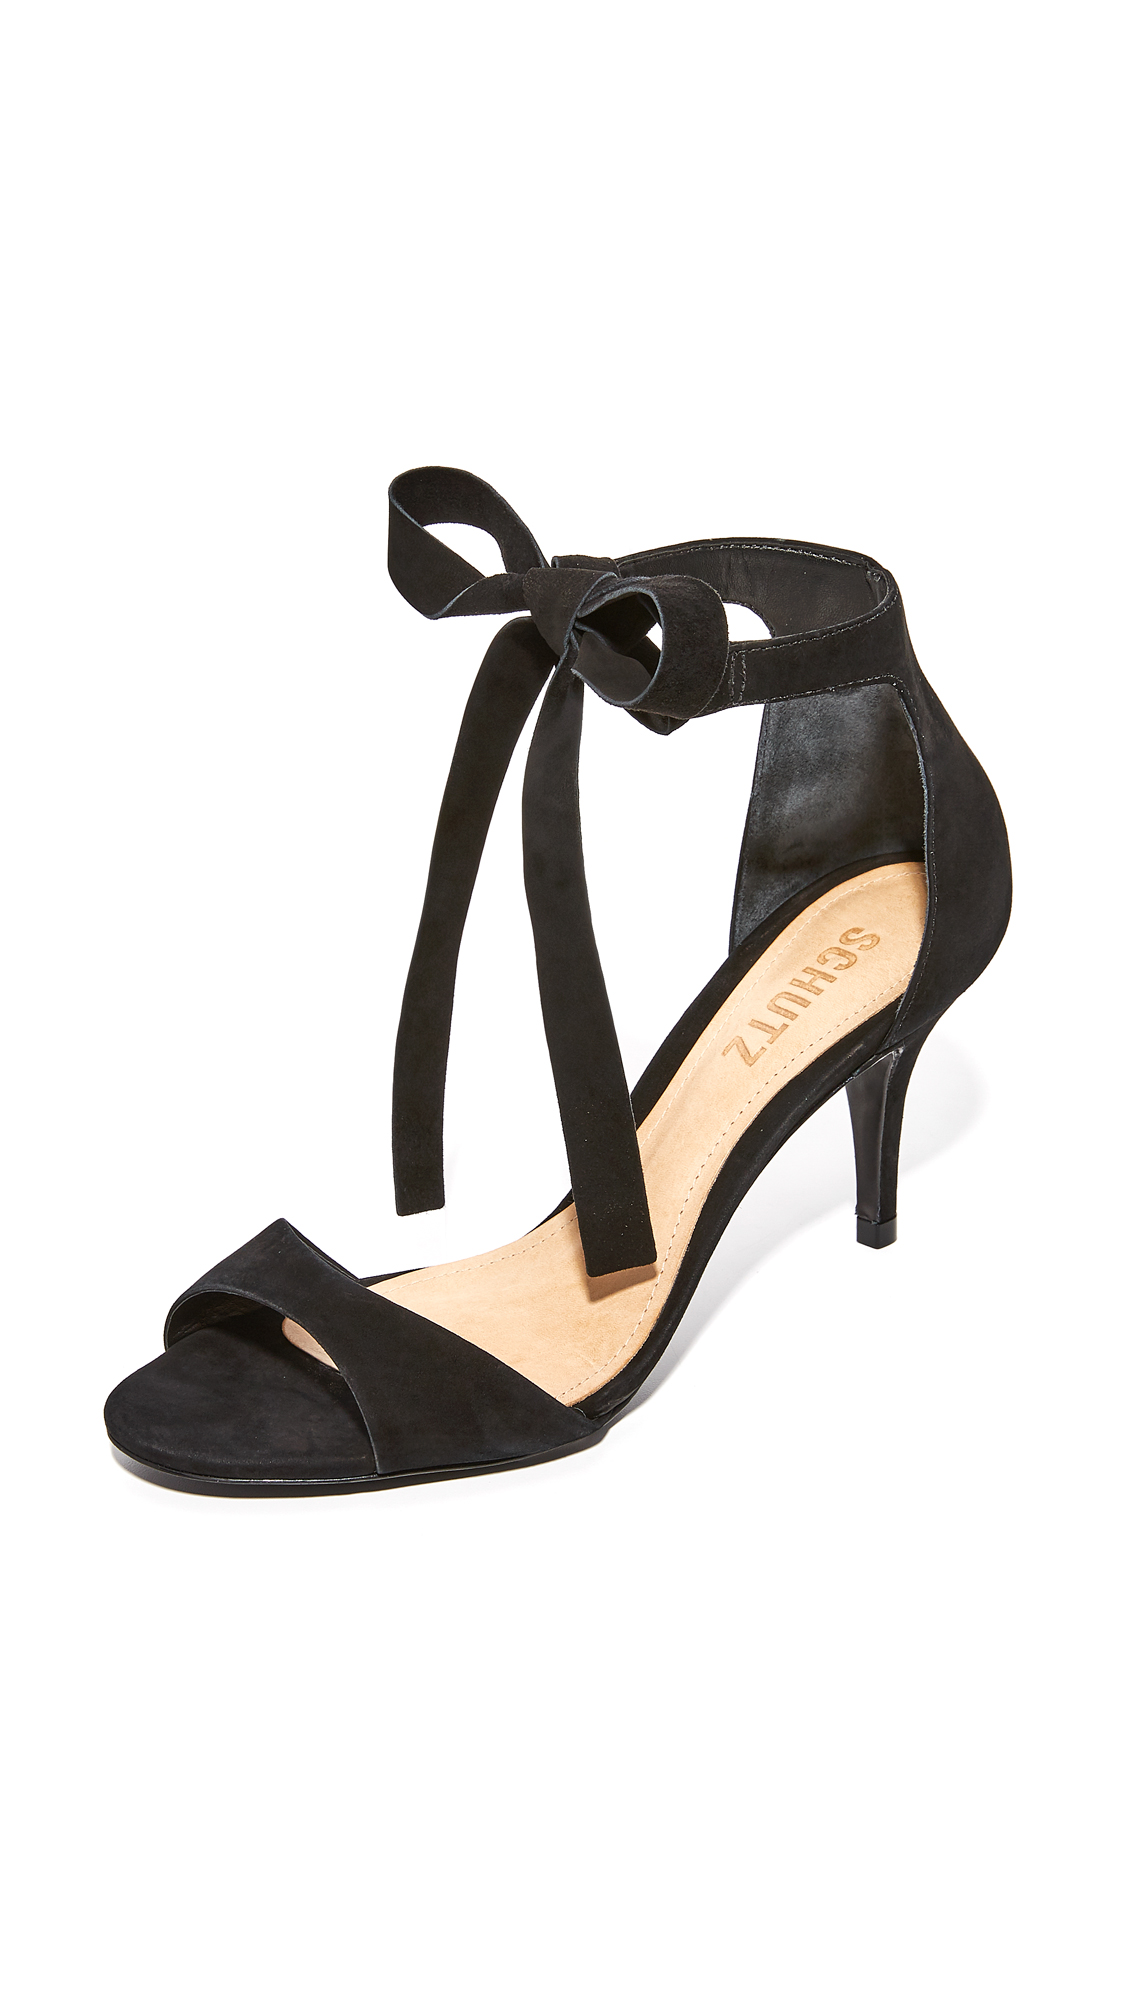 Schutz Tilan Wrap Pumps - Black